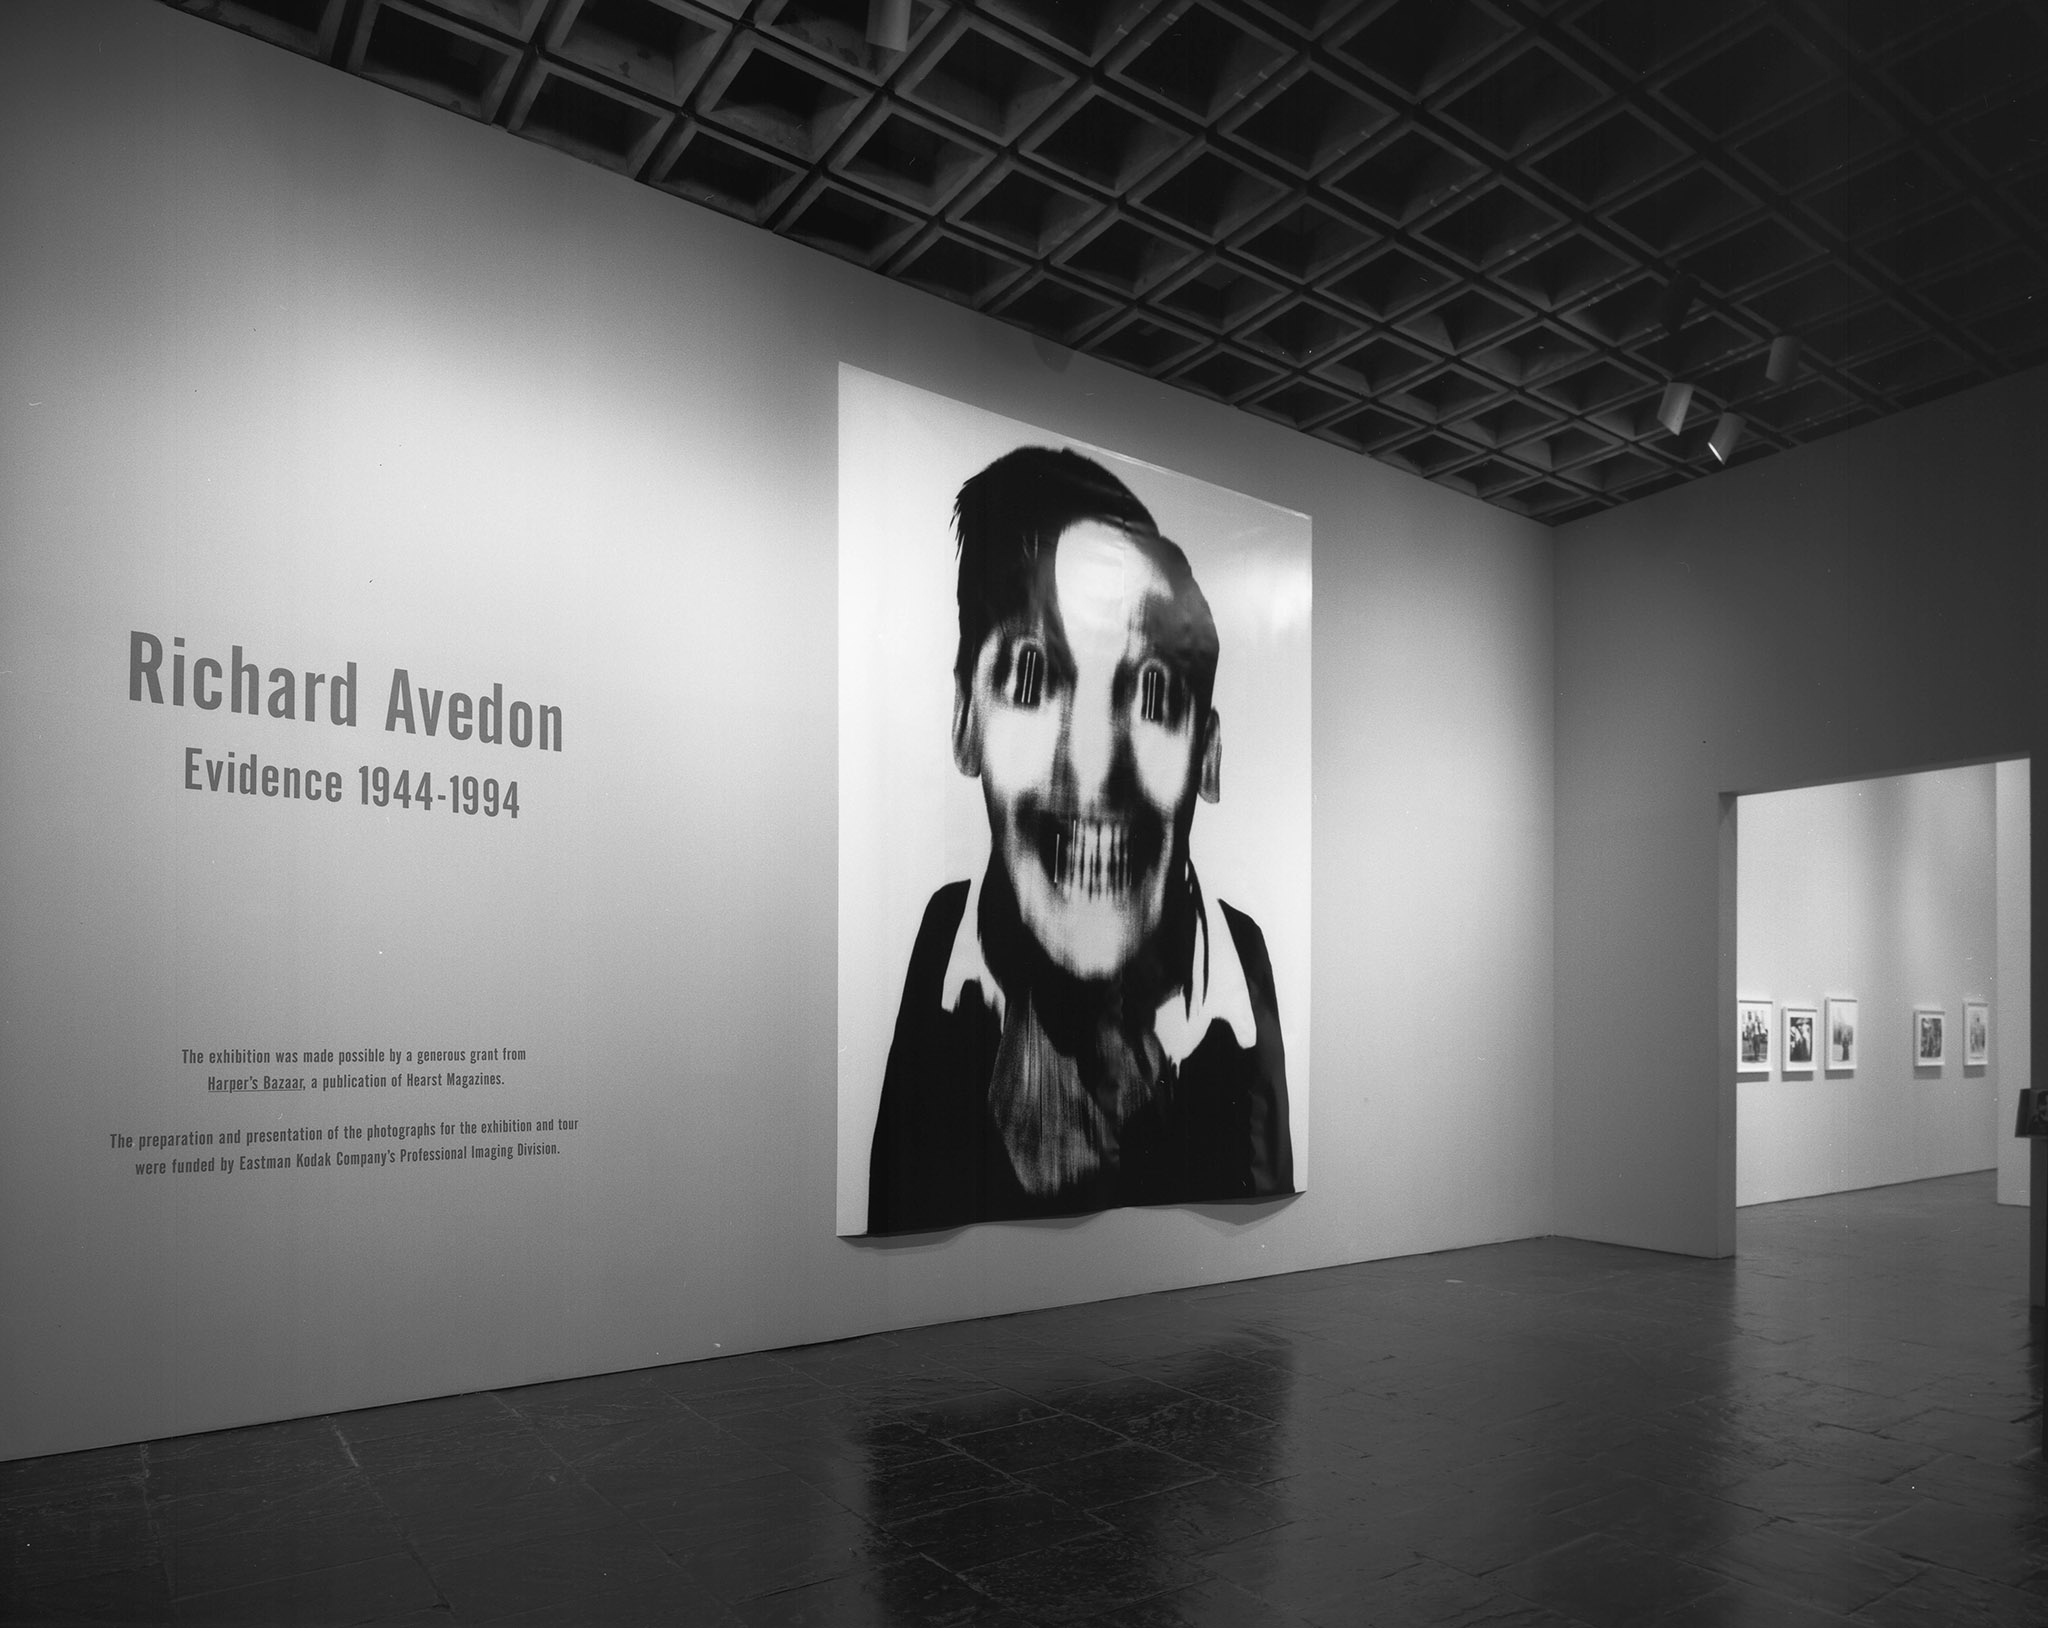 Photography Exhibition Exhibitions The Richard Avedon Foundation